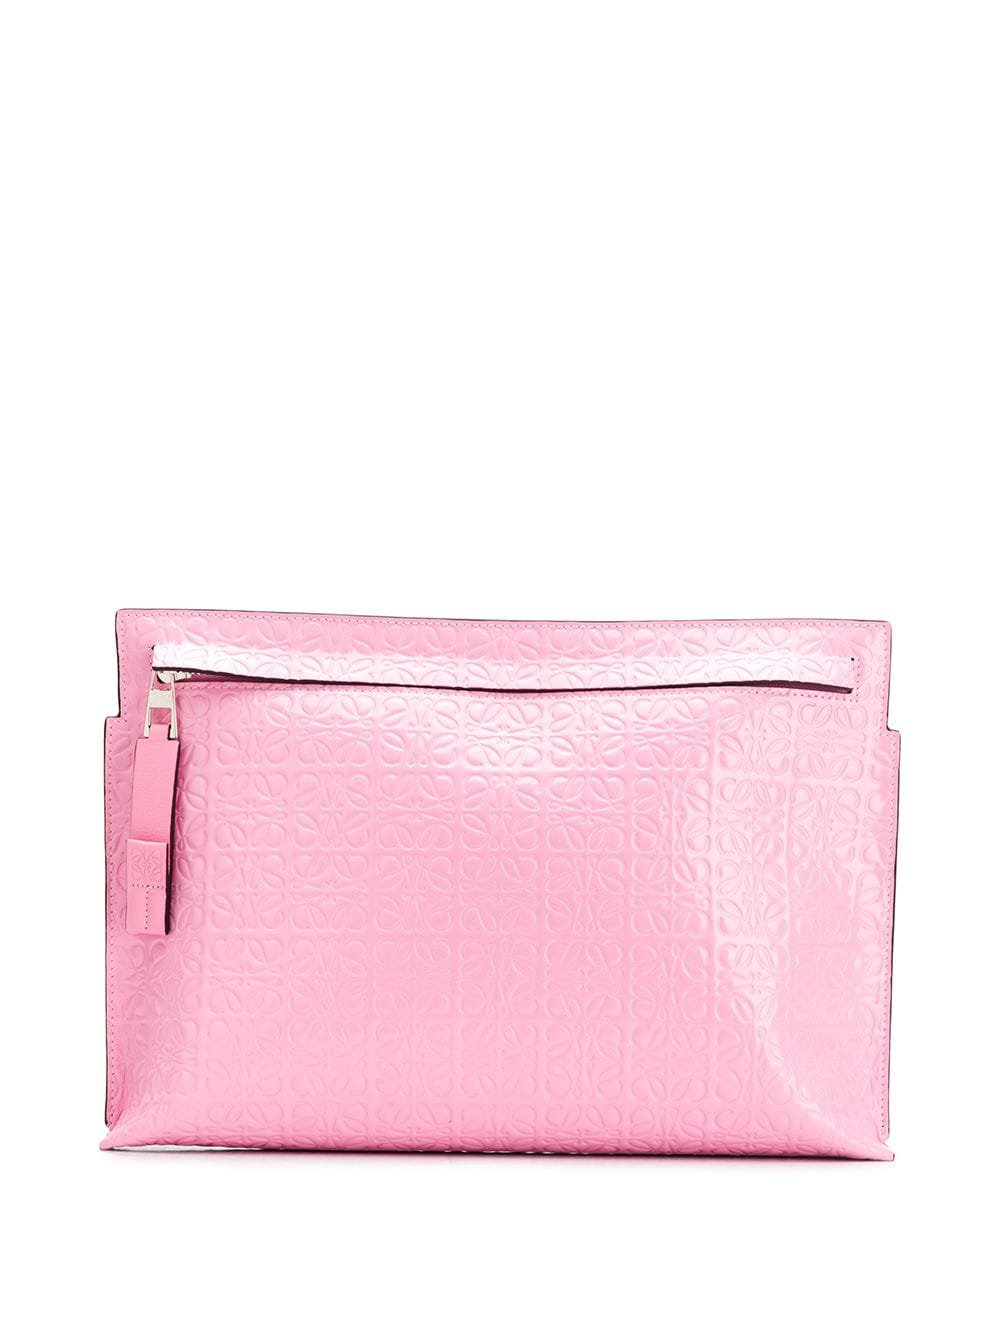 Loewe T Pouch £450 - Shop Online. Same Day Delivery in London